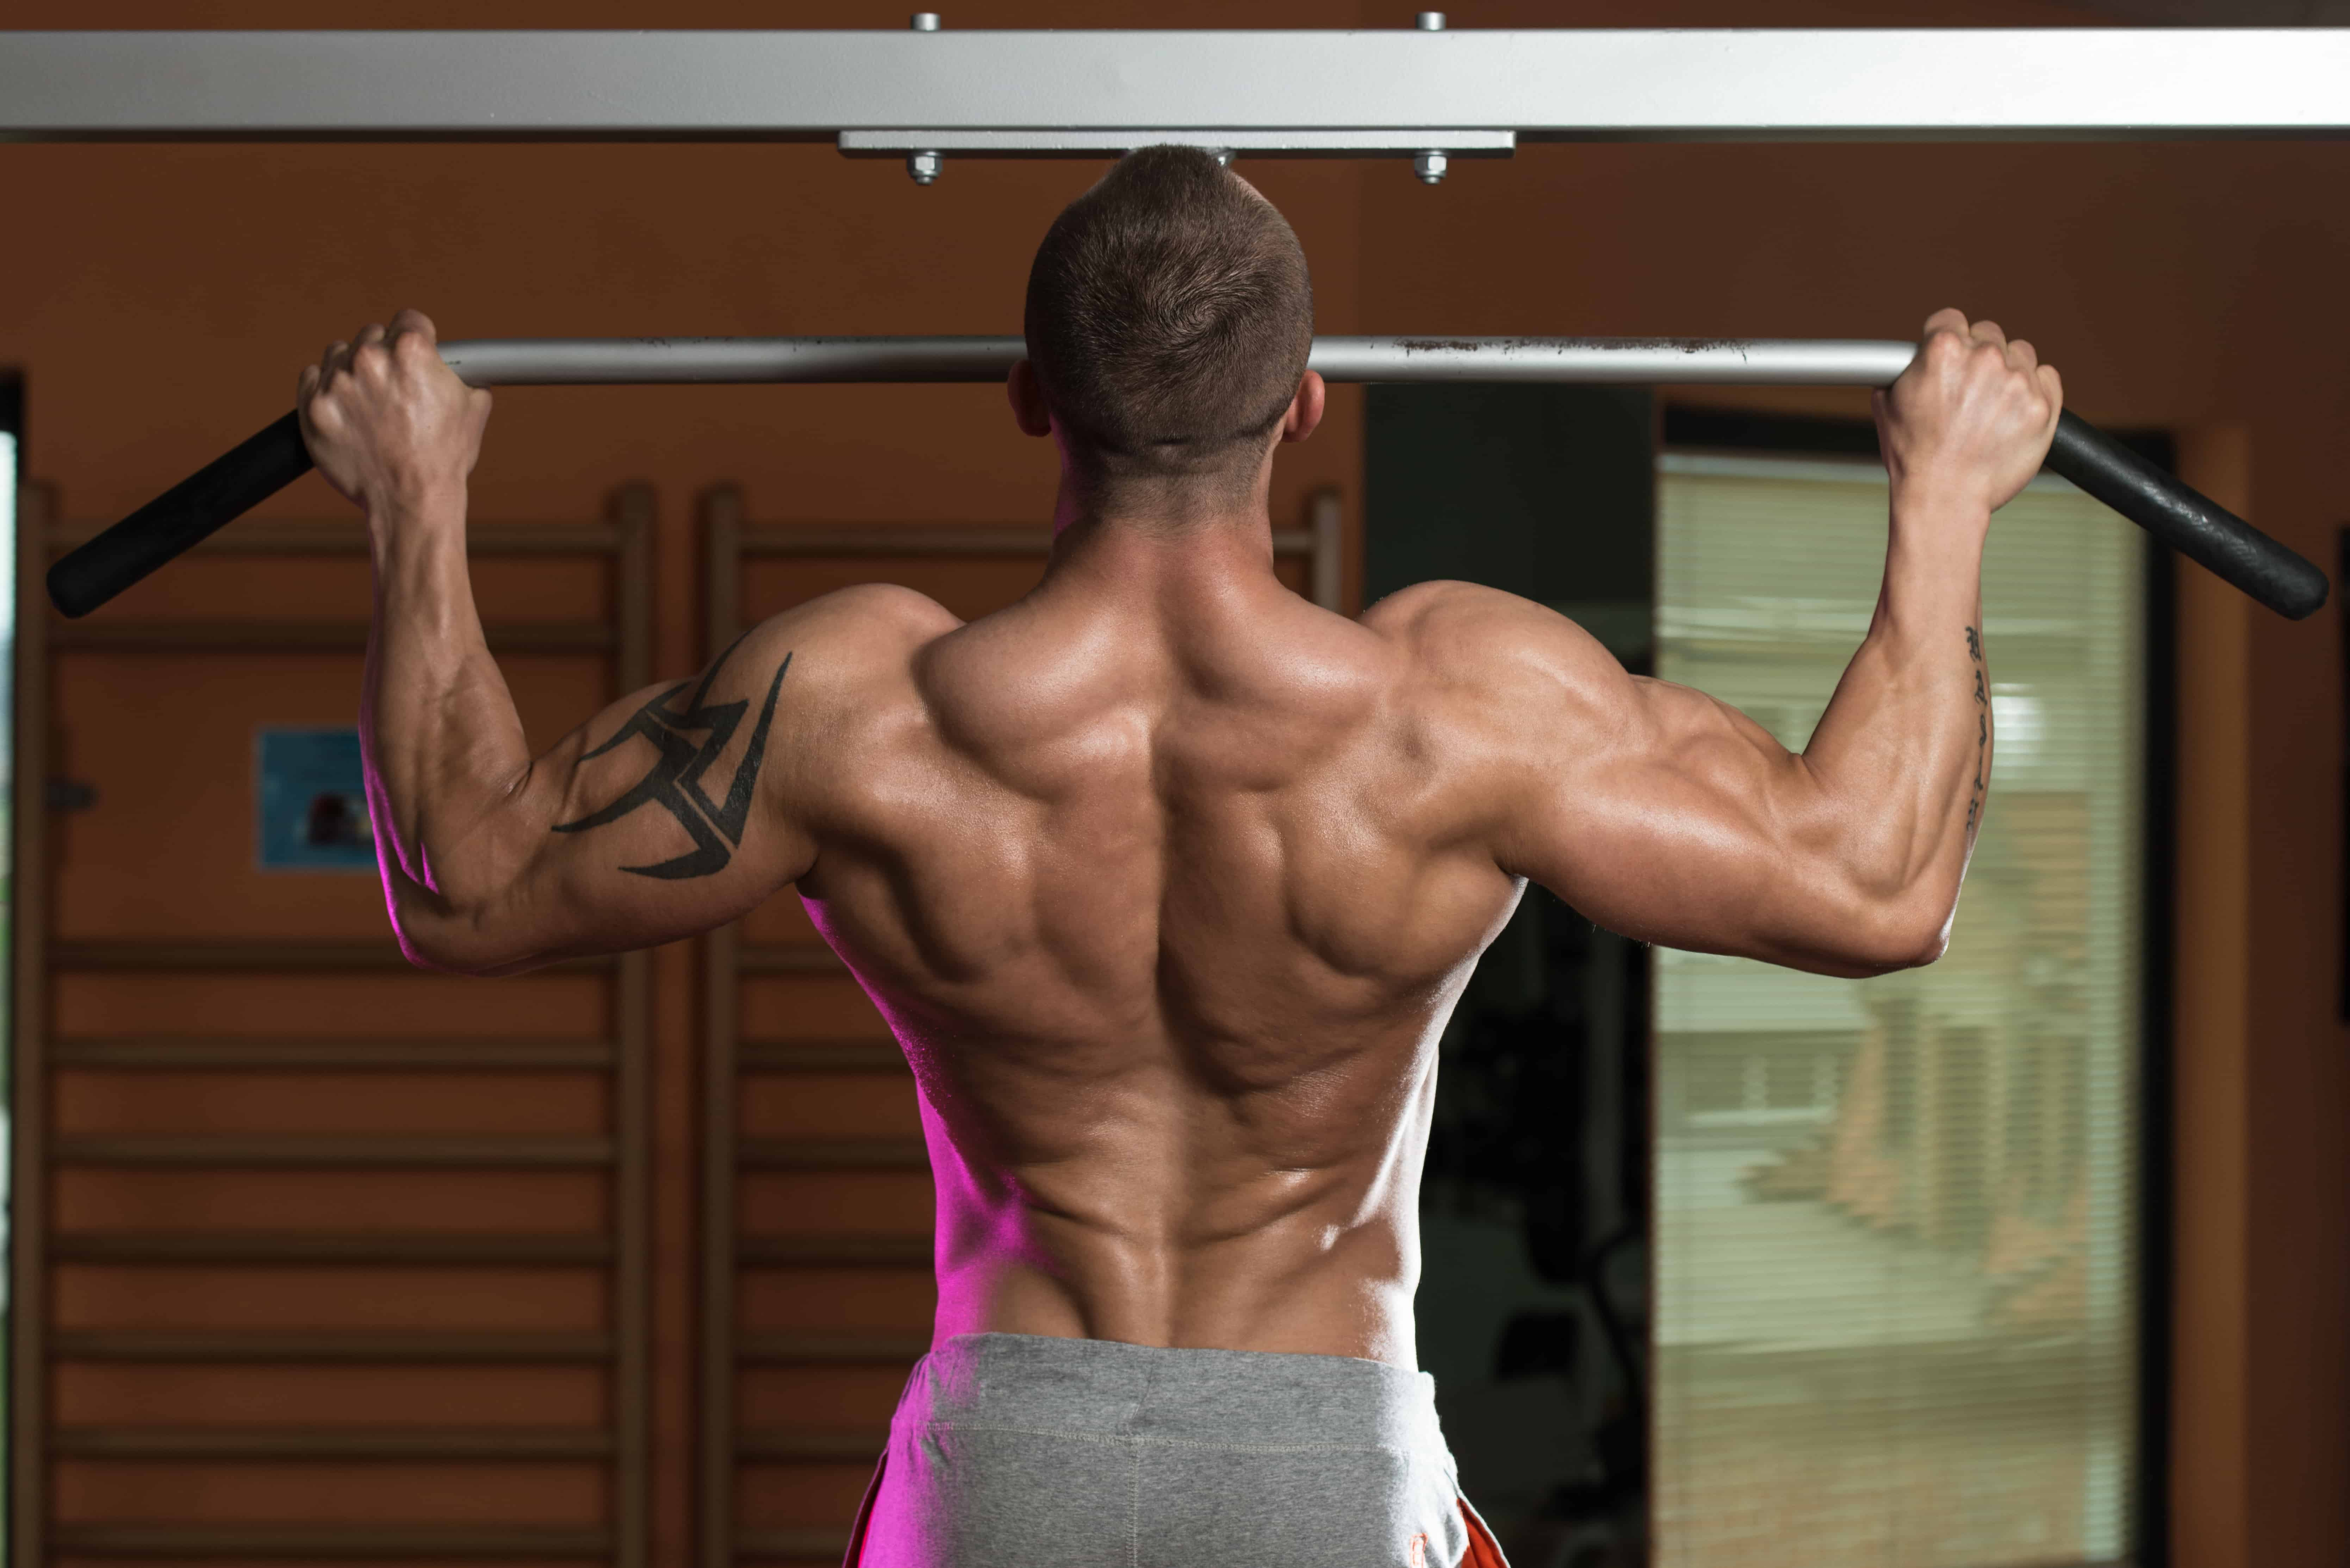 The Top 6 Exercises to Include in Your College Workout Plan